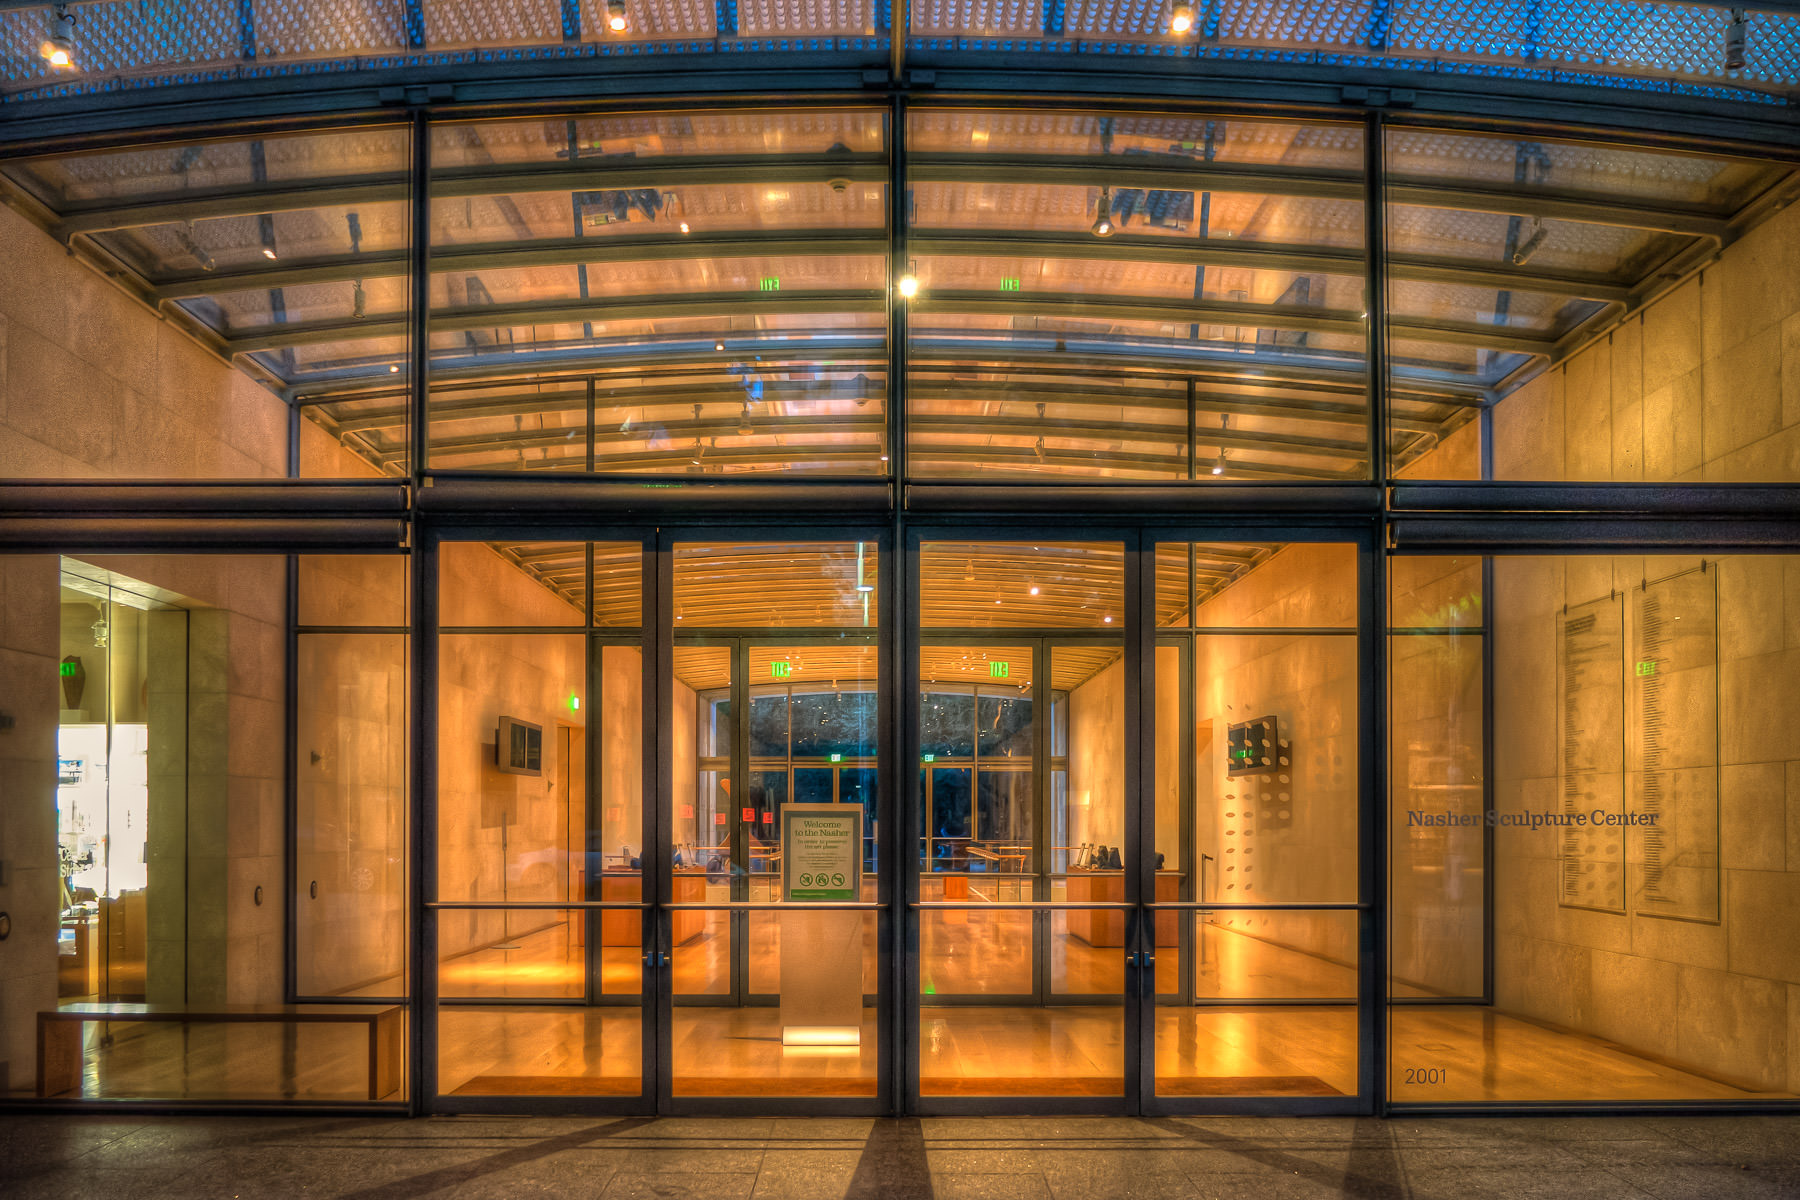 The entrance and lobby to Dallas' Nasher Sculpture Center, empty of patrons after closing time.